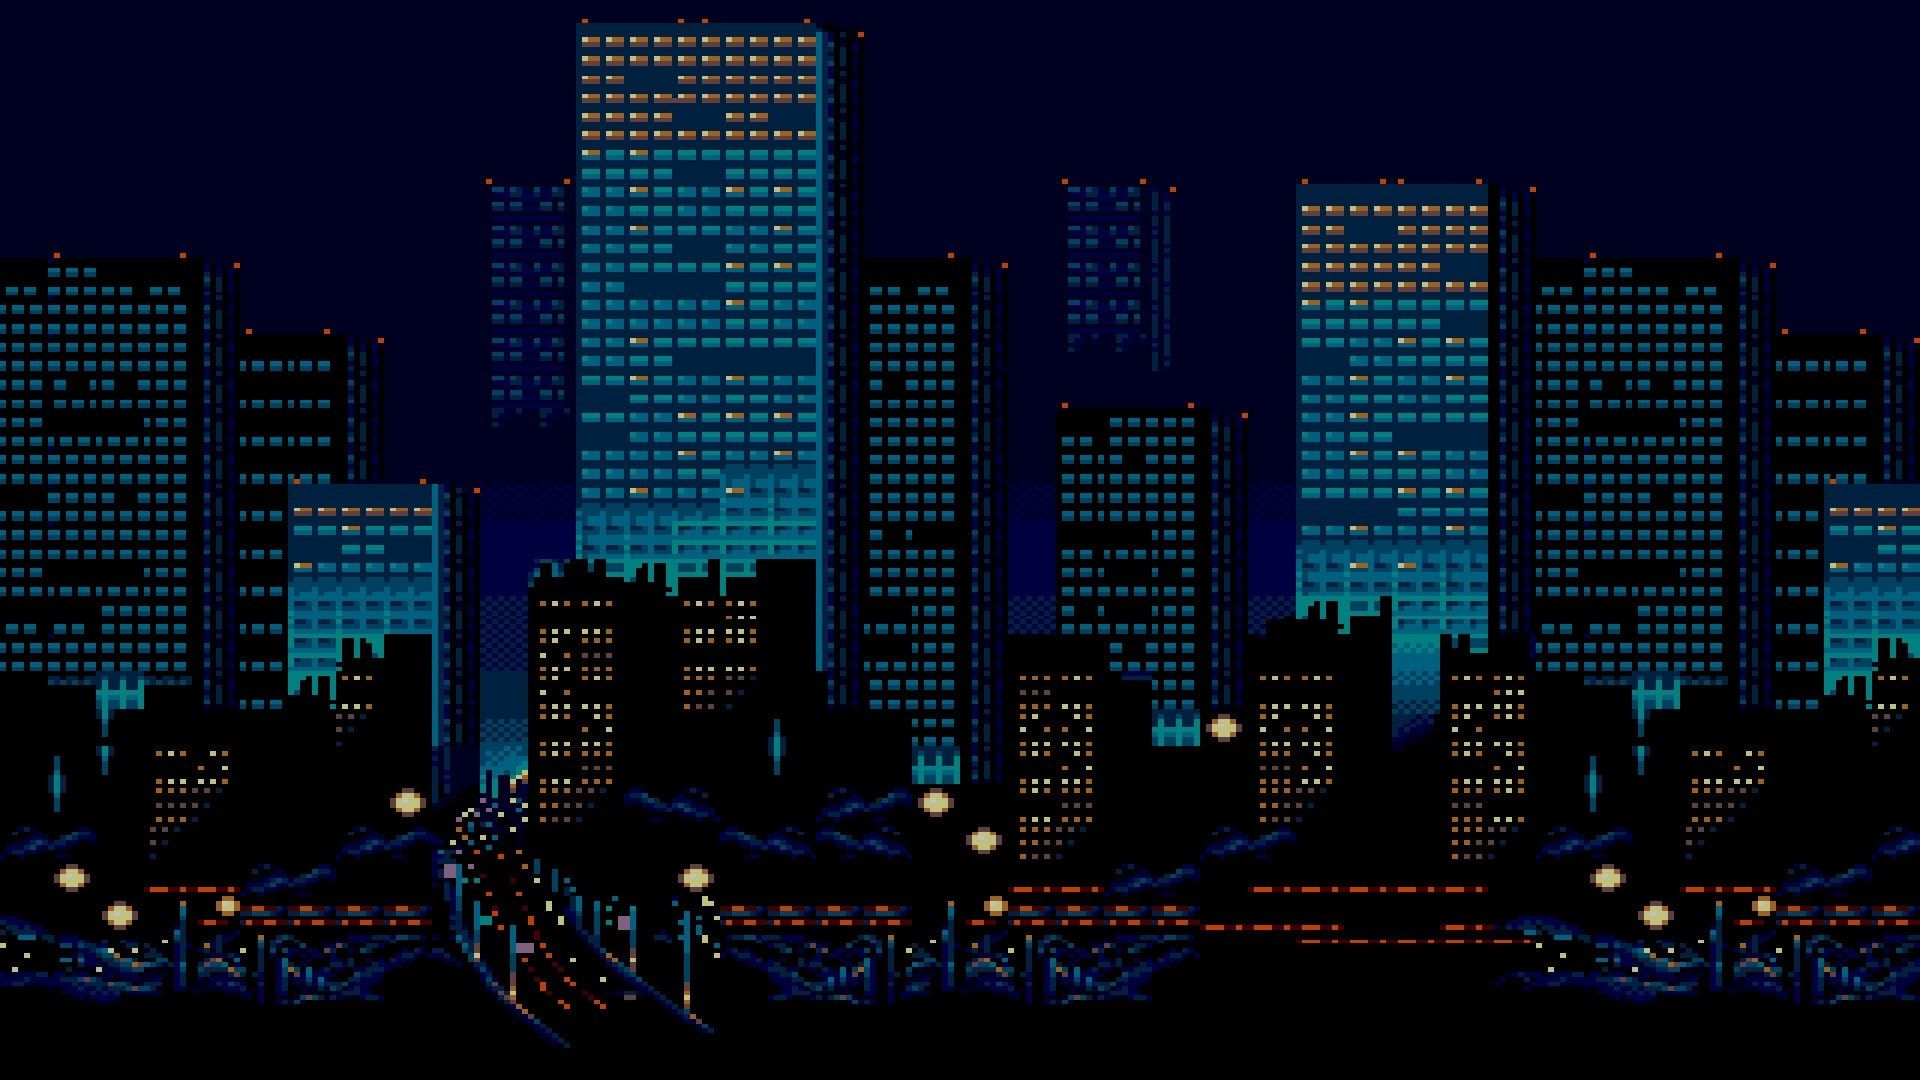 1920x1080 City Hd Wallpaper In 2020 Pixel City Pixel Art Art Wallpaper